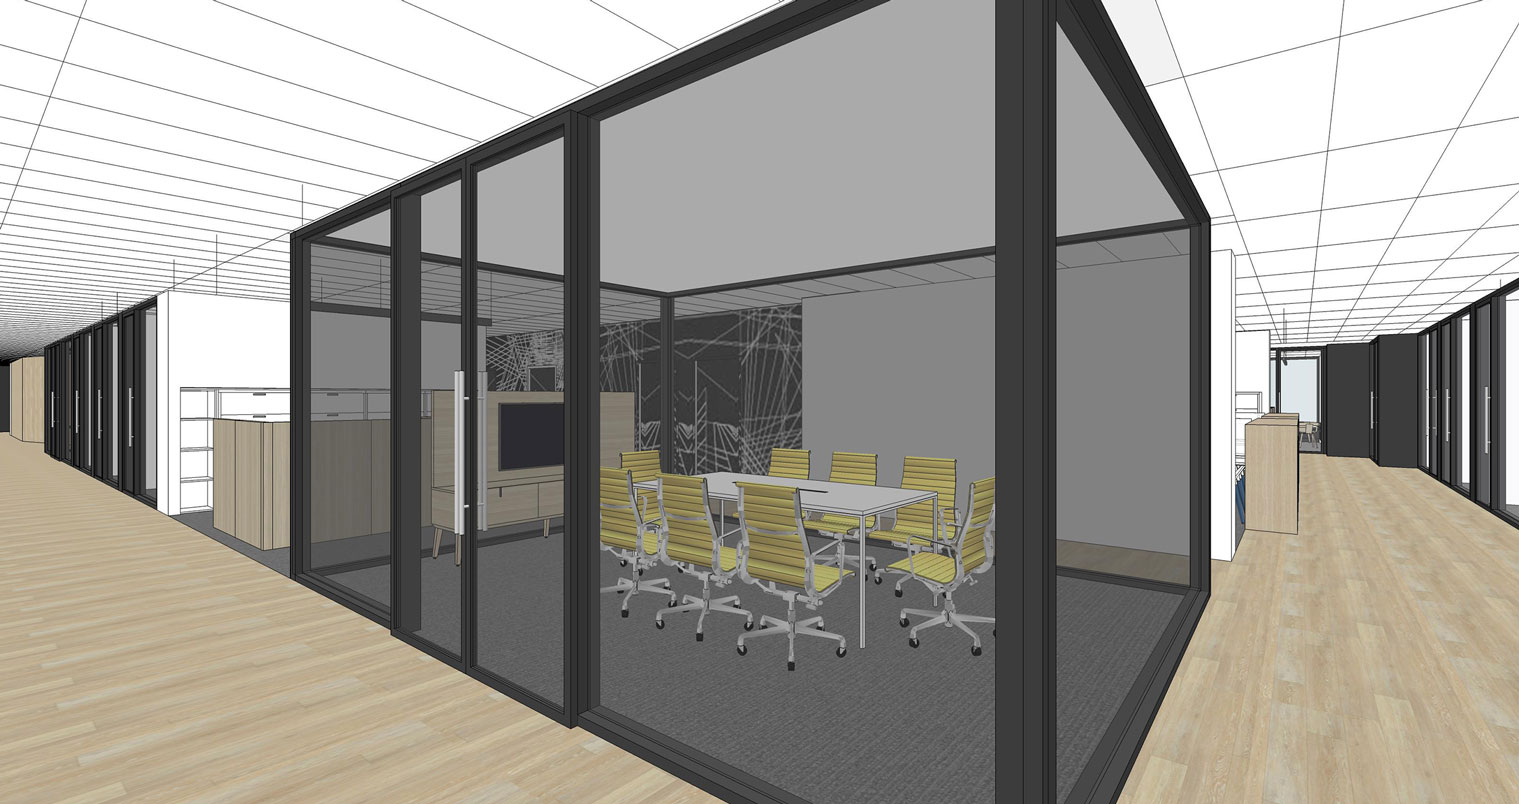 NHLPA rendering view into meeting room through black tinted glass walls